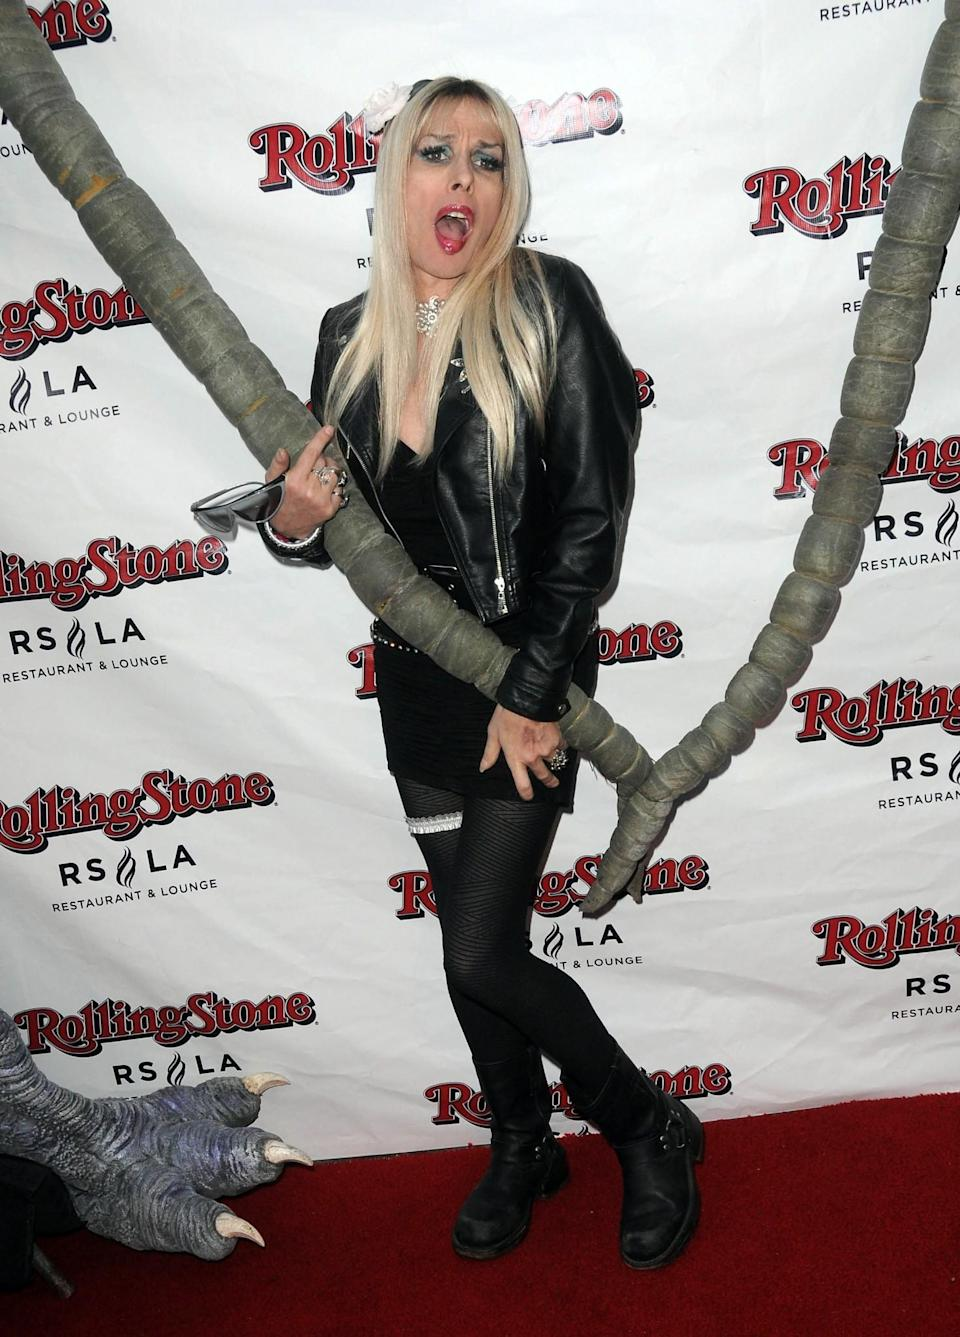 Alexis Arquette arrives for the Wrap Party For SYFY Networks' 'Monster Man' Season 2 held at Rolling Stone Restaurant And Lounge on April 16, 2012 in Los Angeles, California. (Photo by Albert L. Ortega/Getty Images)